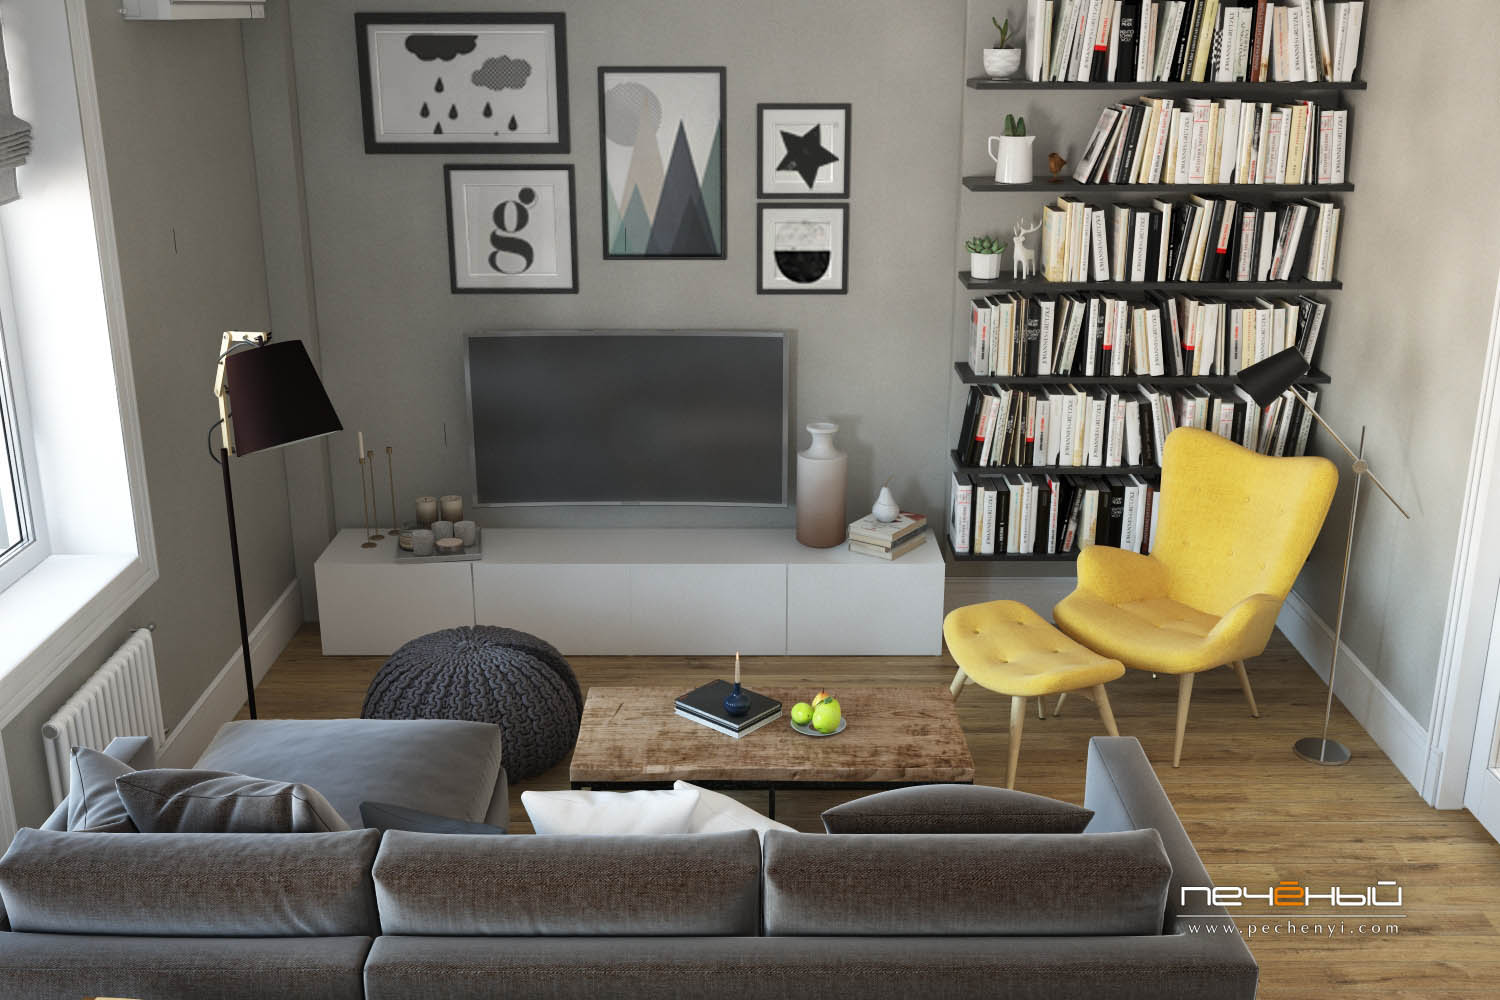 Floating shelves look airy enough but accomodate a lot, and a small TV unit is a good idea for additional storage